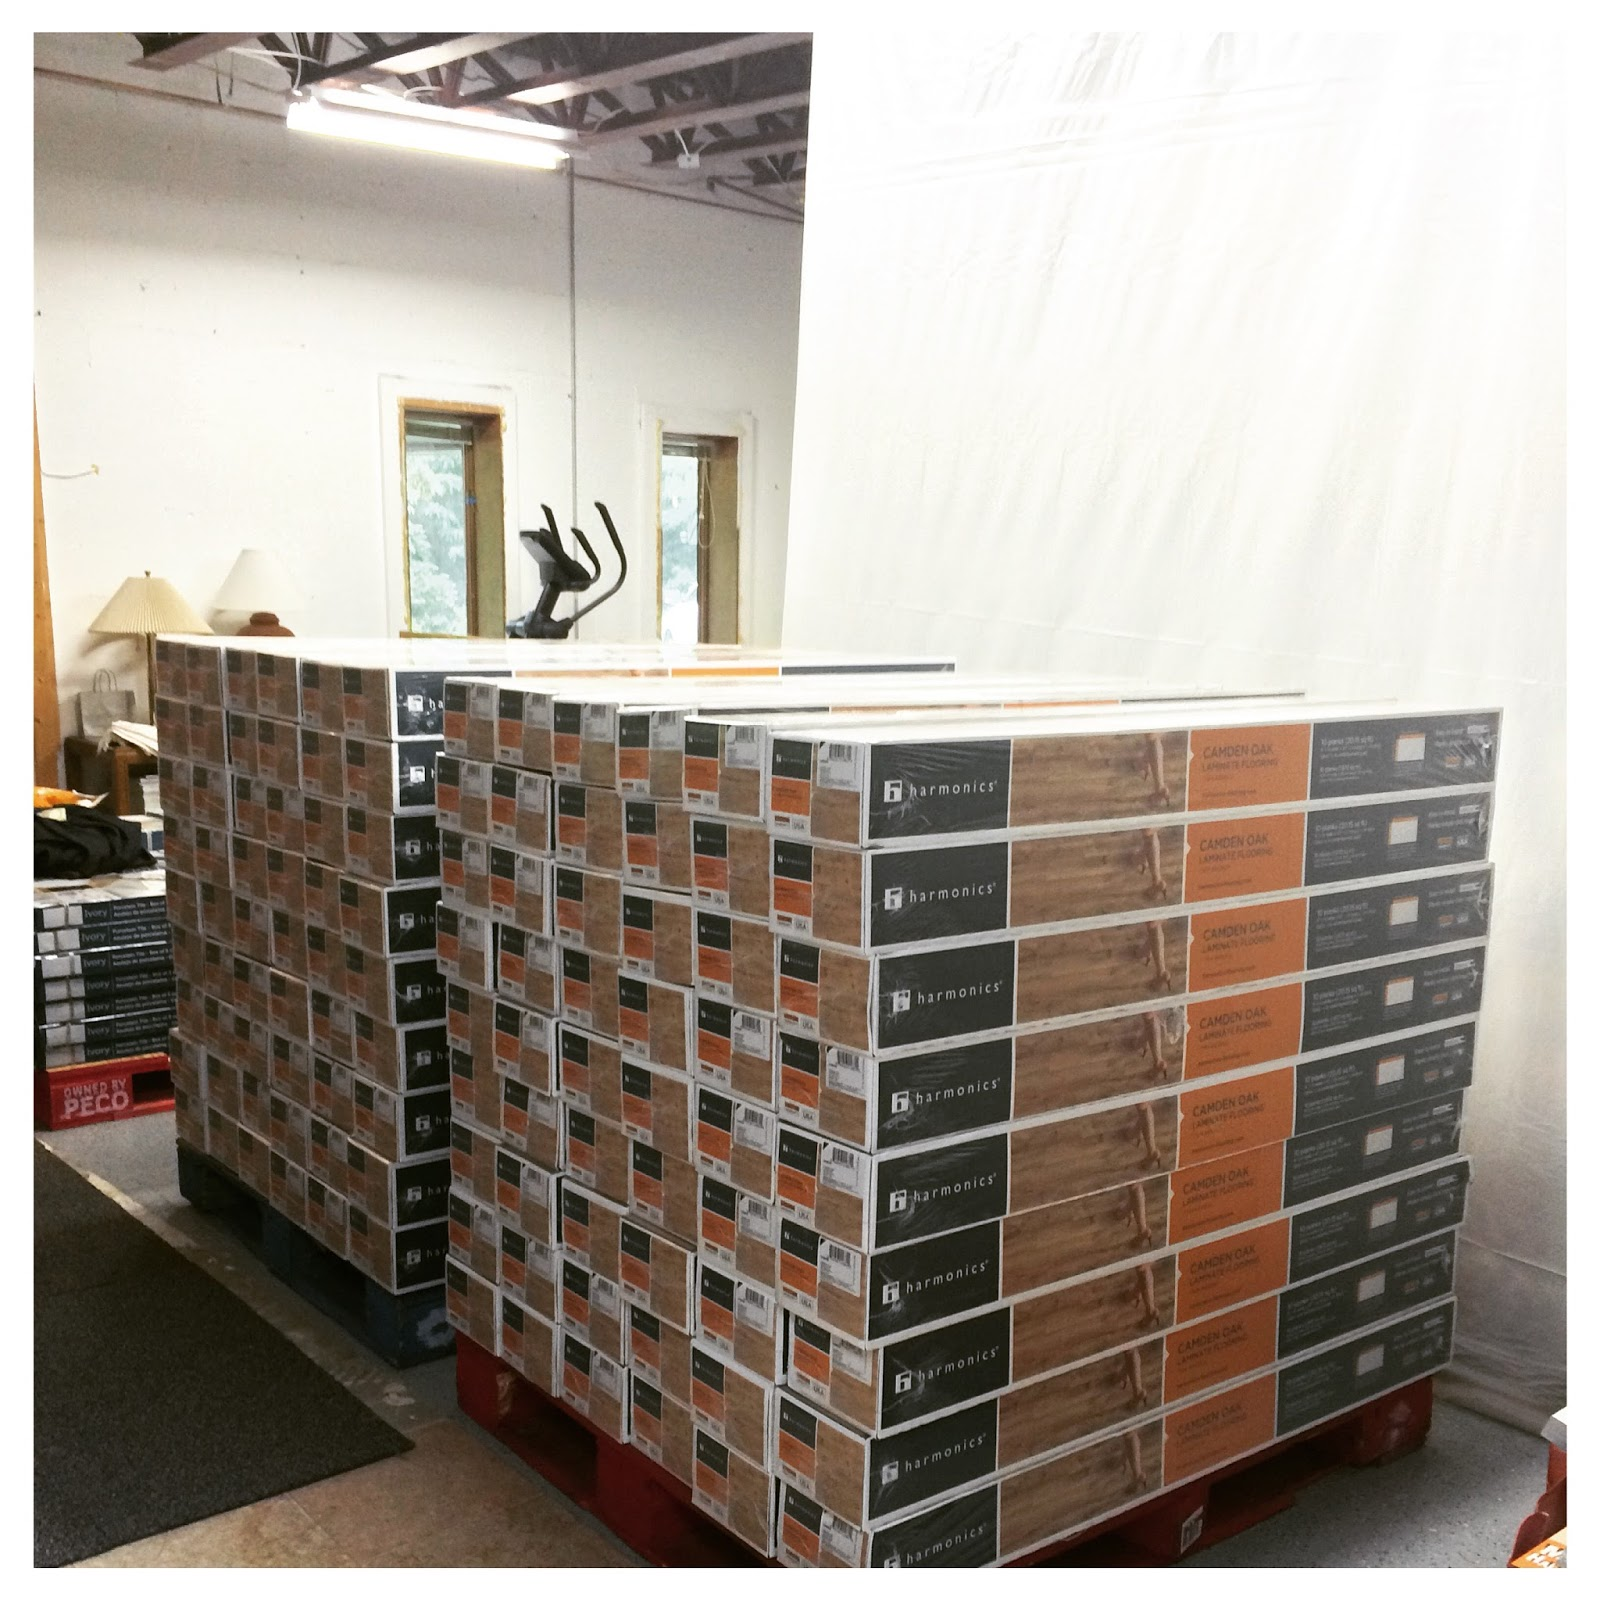 the Costco Connoisseur Remodeling with Costco Teaser s